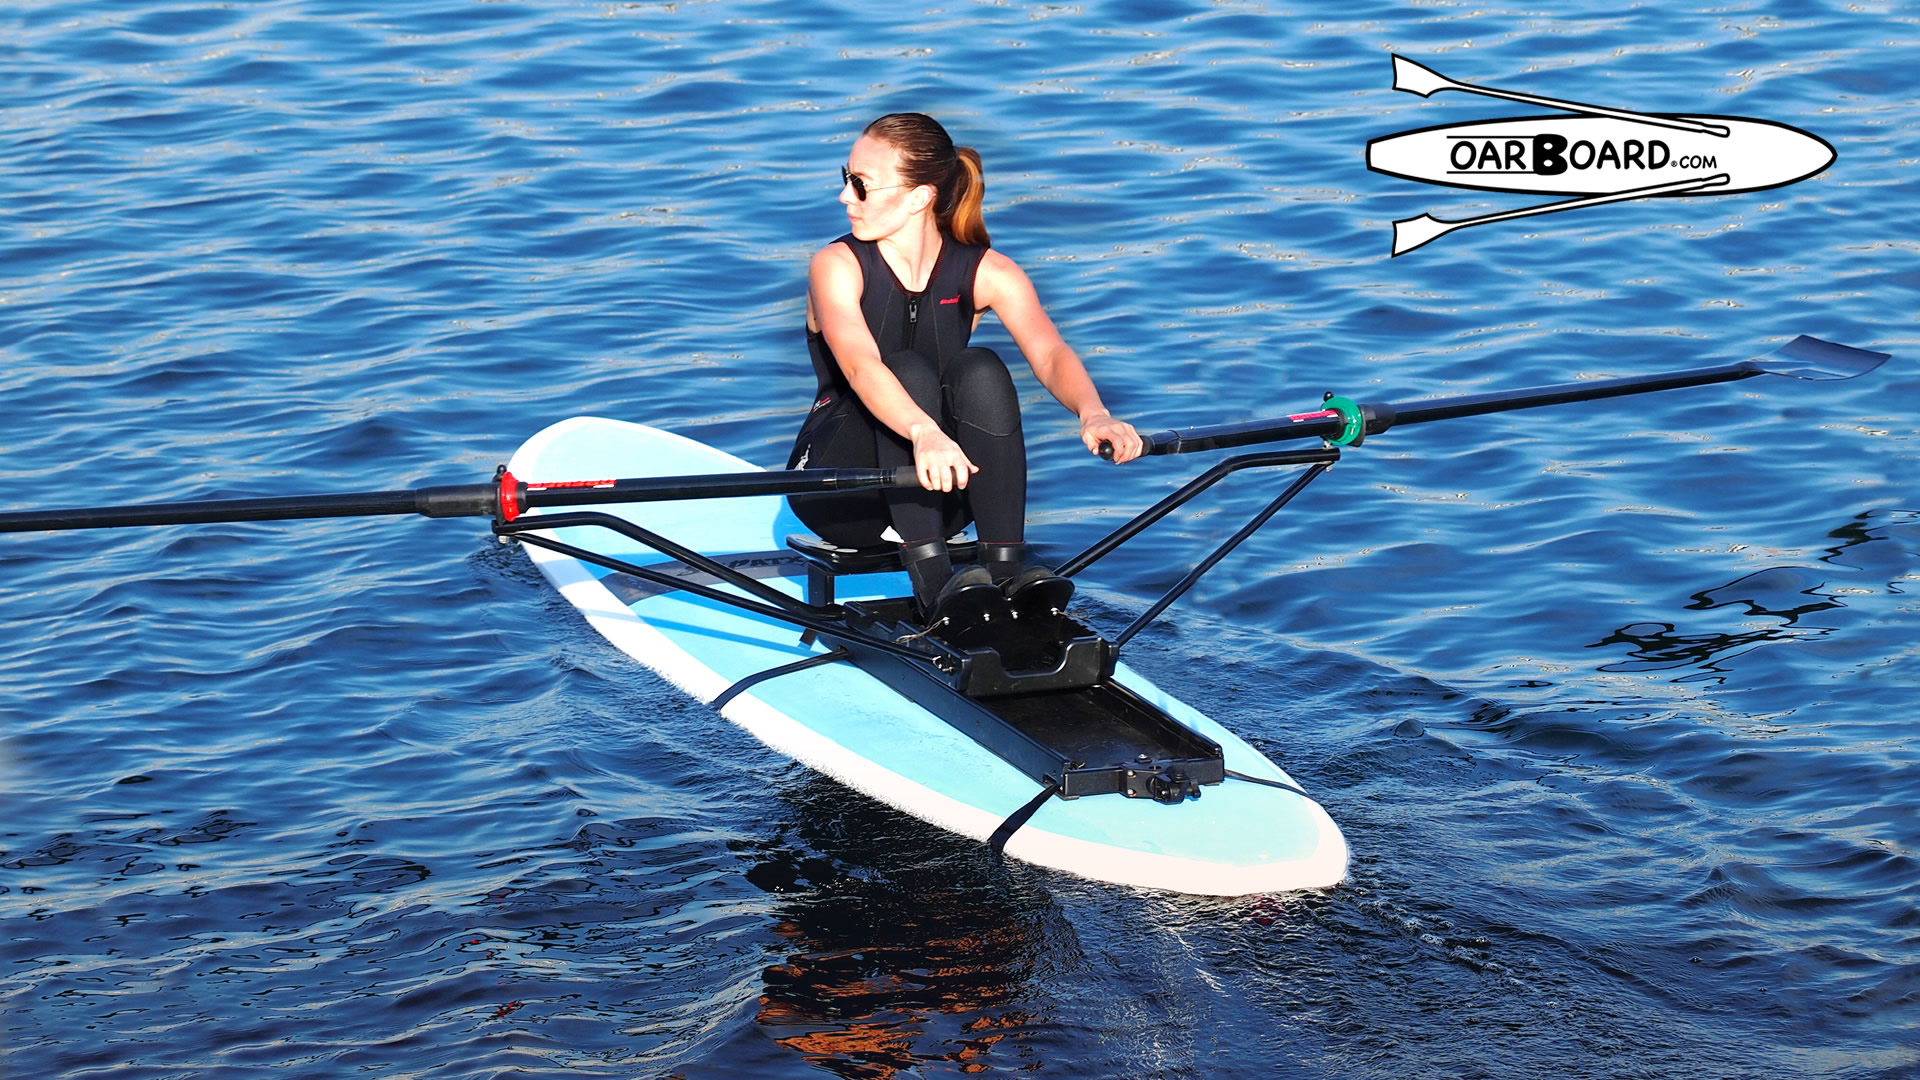 Oar-Board-Rower-with-Katie-Whitehall-Rowing-and-Sail